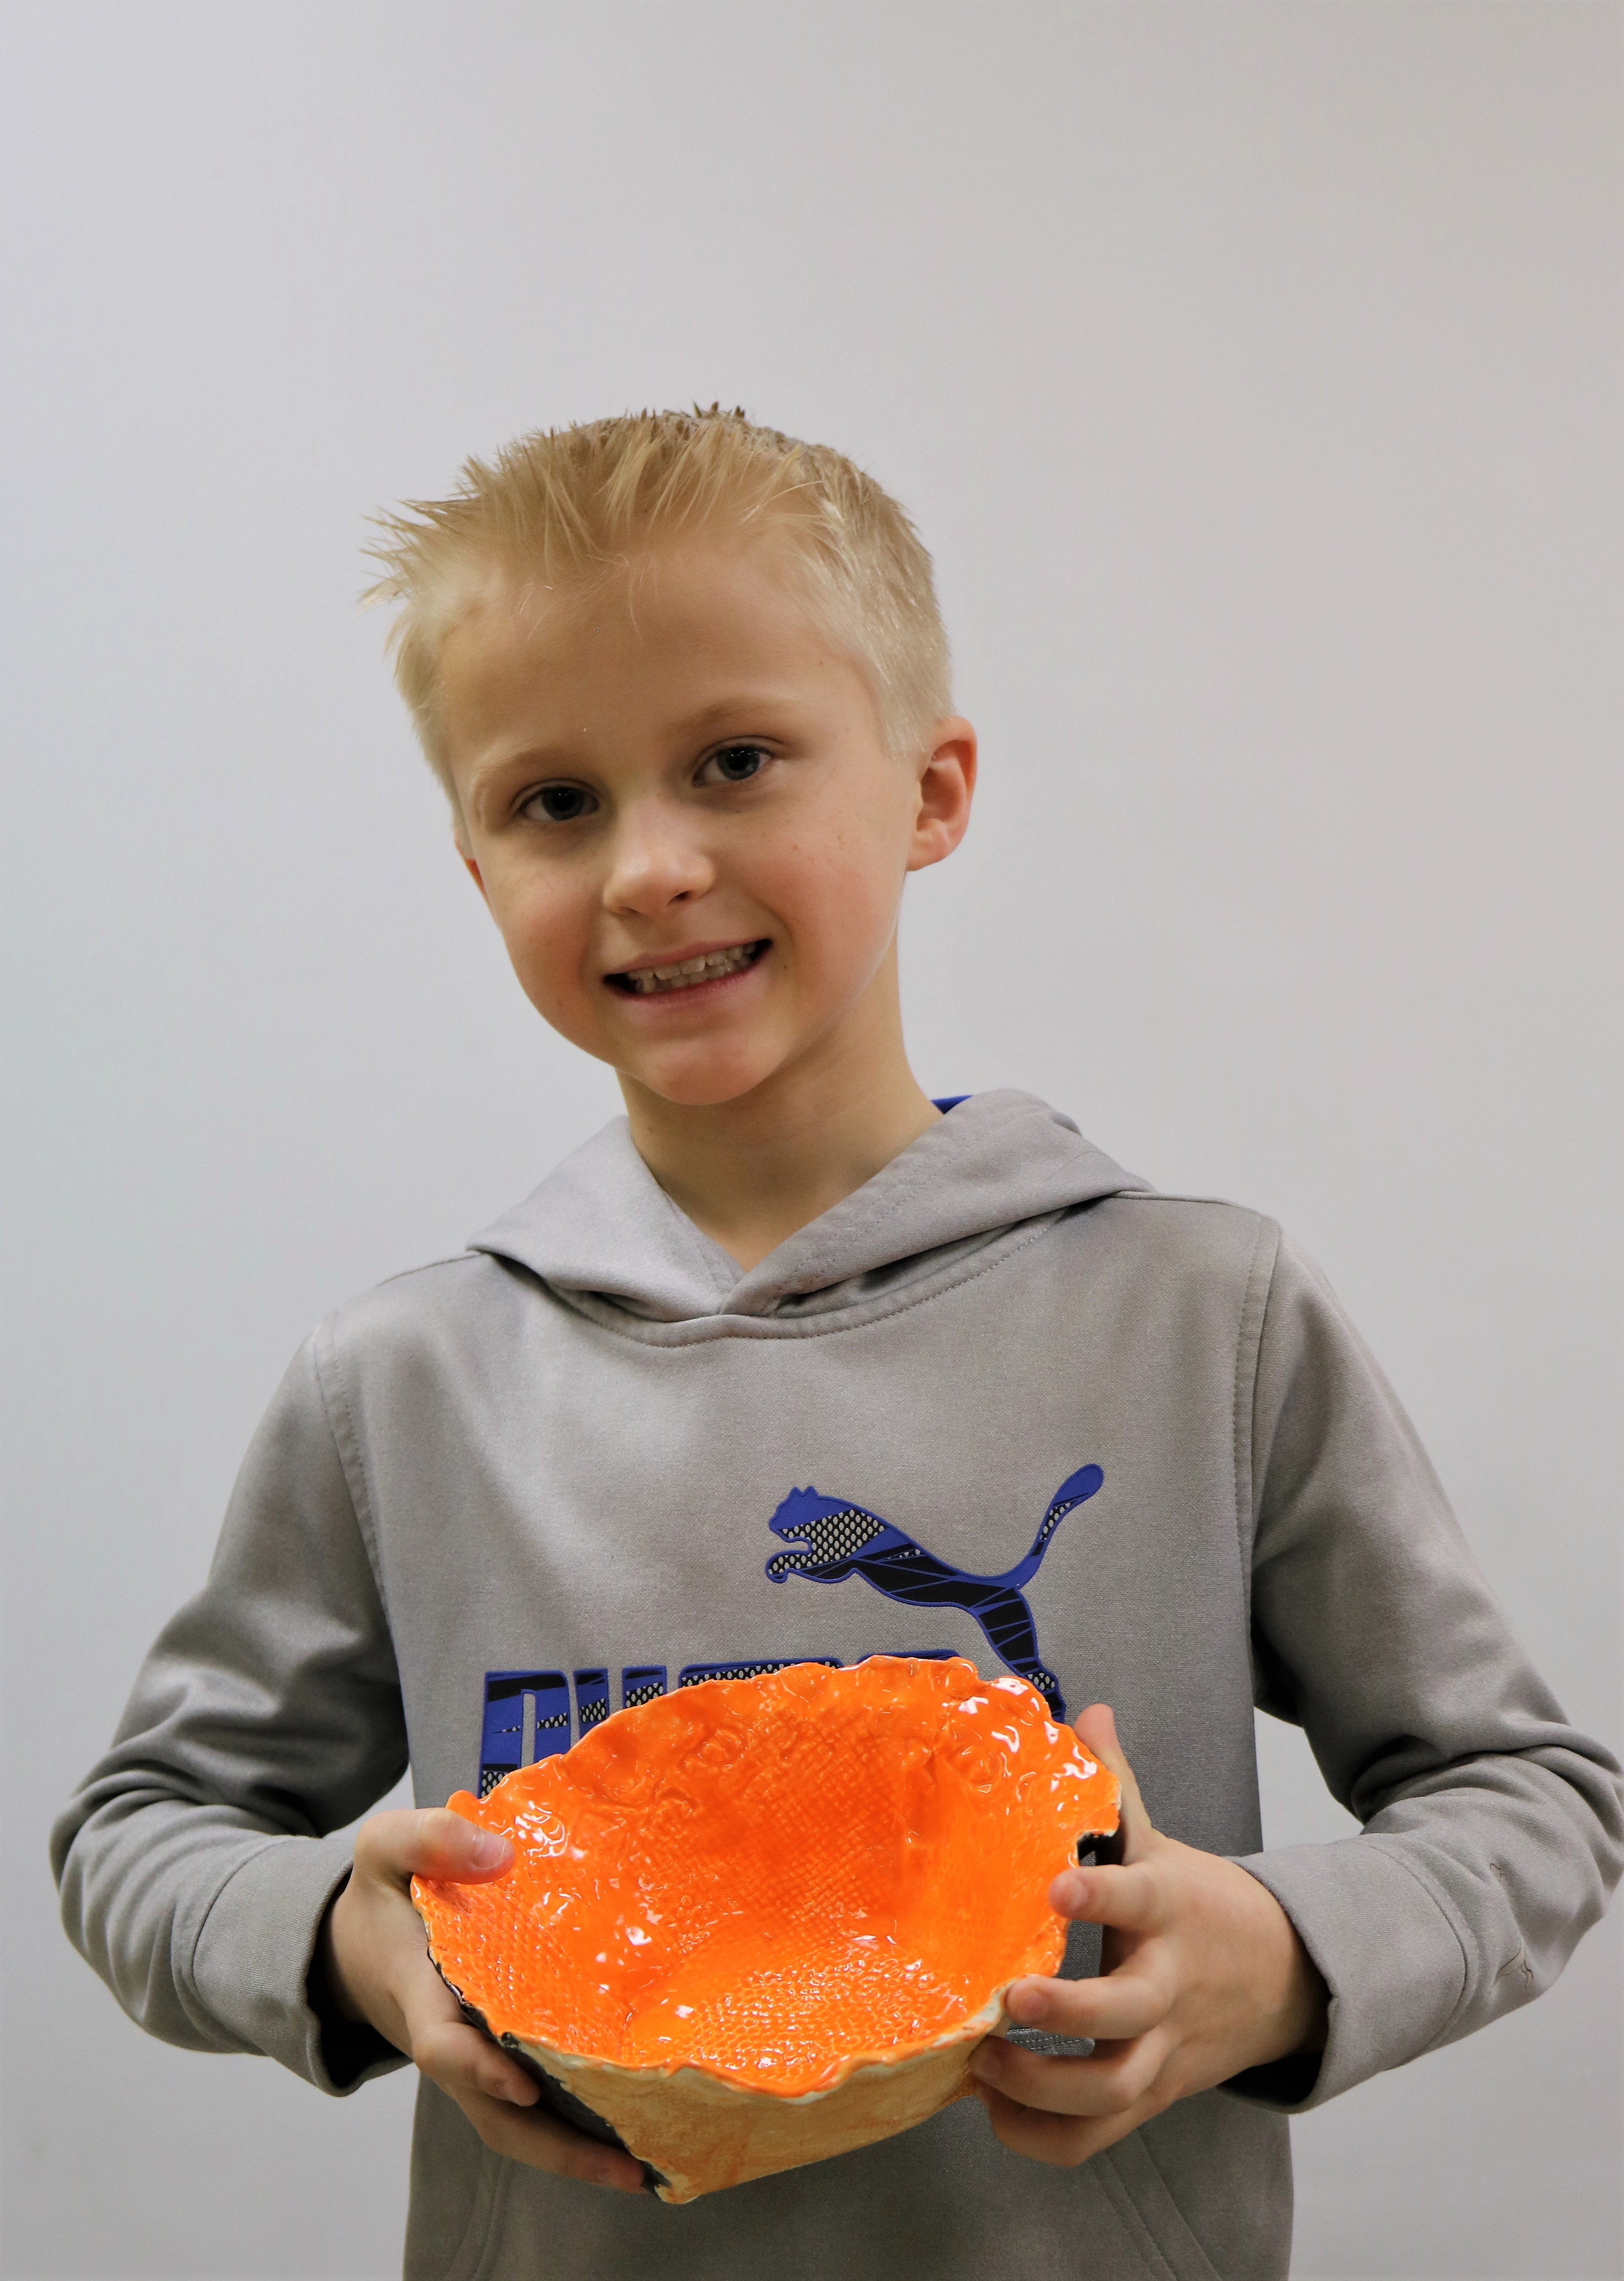 Ben Norby with one of the handmade bowls created for the Empty Bowls event at Lanesboro School